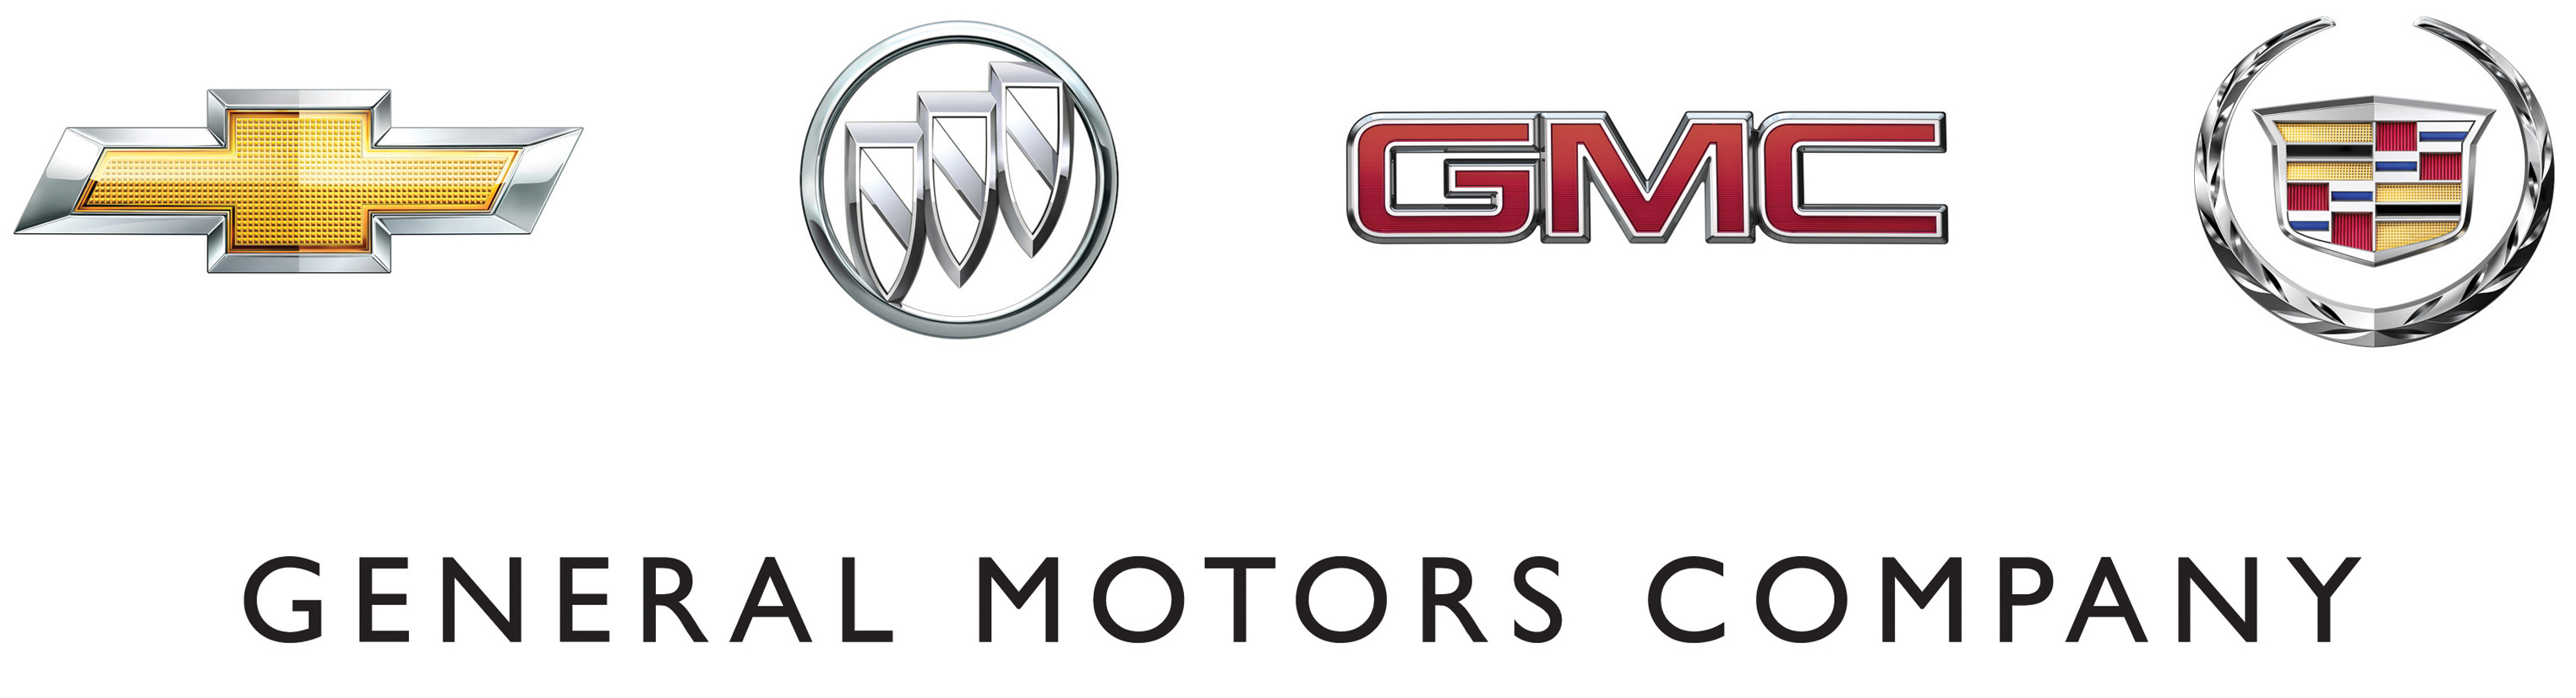 Gm reports cpo sales totaled 23 224 in july 2012 digital for General motors pricing strategy